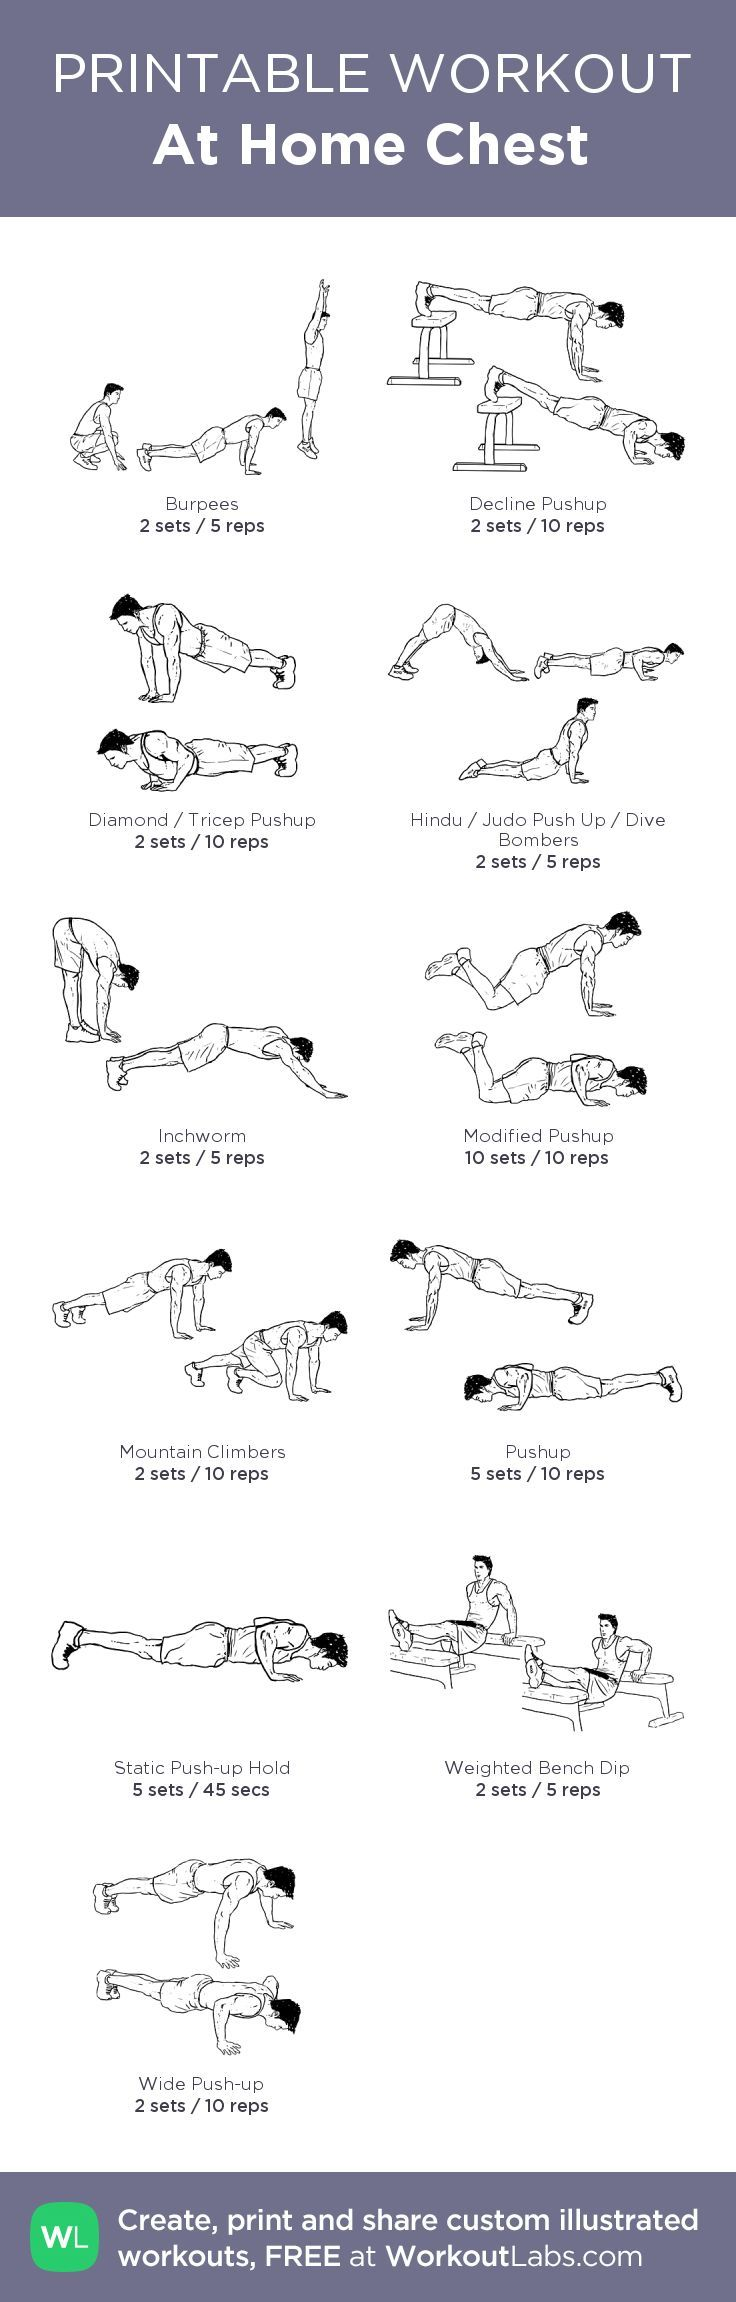 Easy Six Pack Abs Workout For Men Ab Exercises To Get Ripped Fast Home Chest